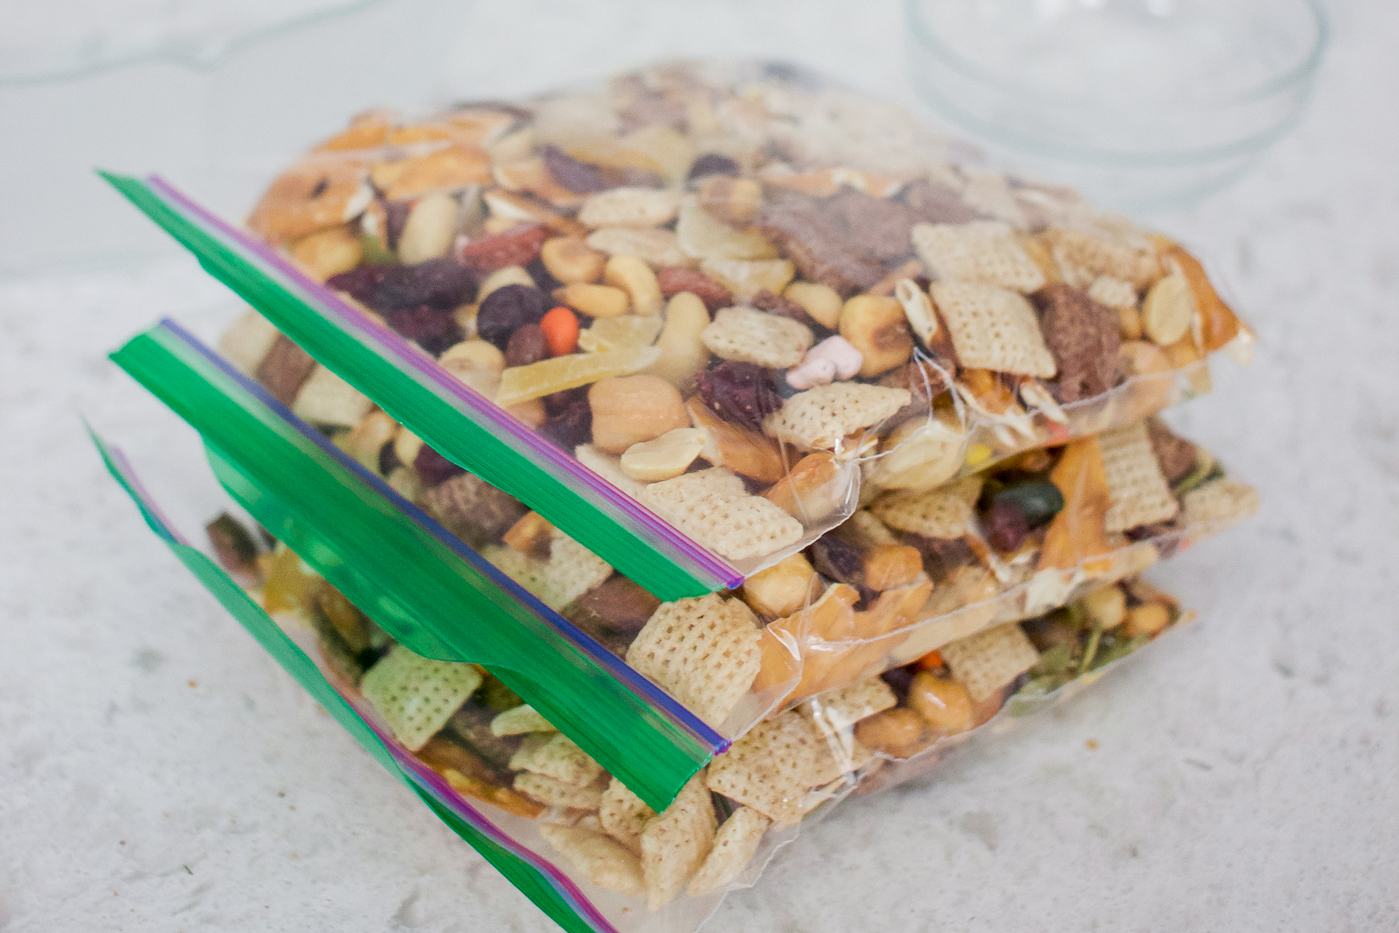 easy and simple homemade trail mix, in snack sized bags, ready for camping trip